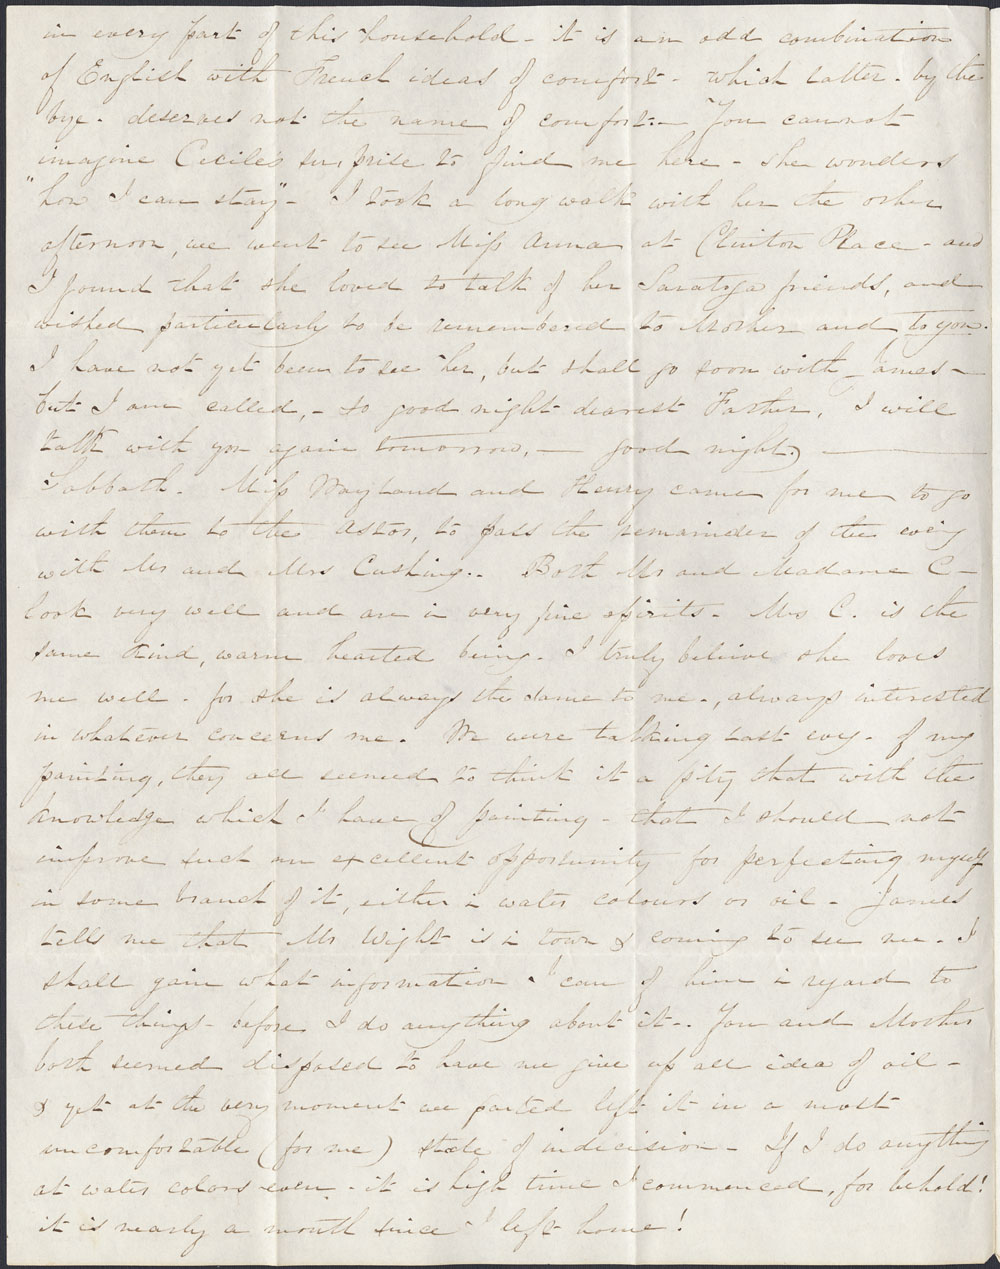 [Correspondence of Mary Westcott] 1845. (item 2)